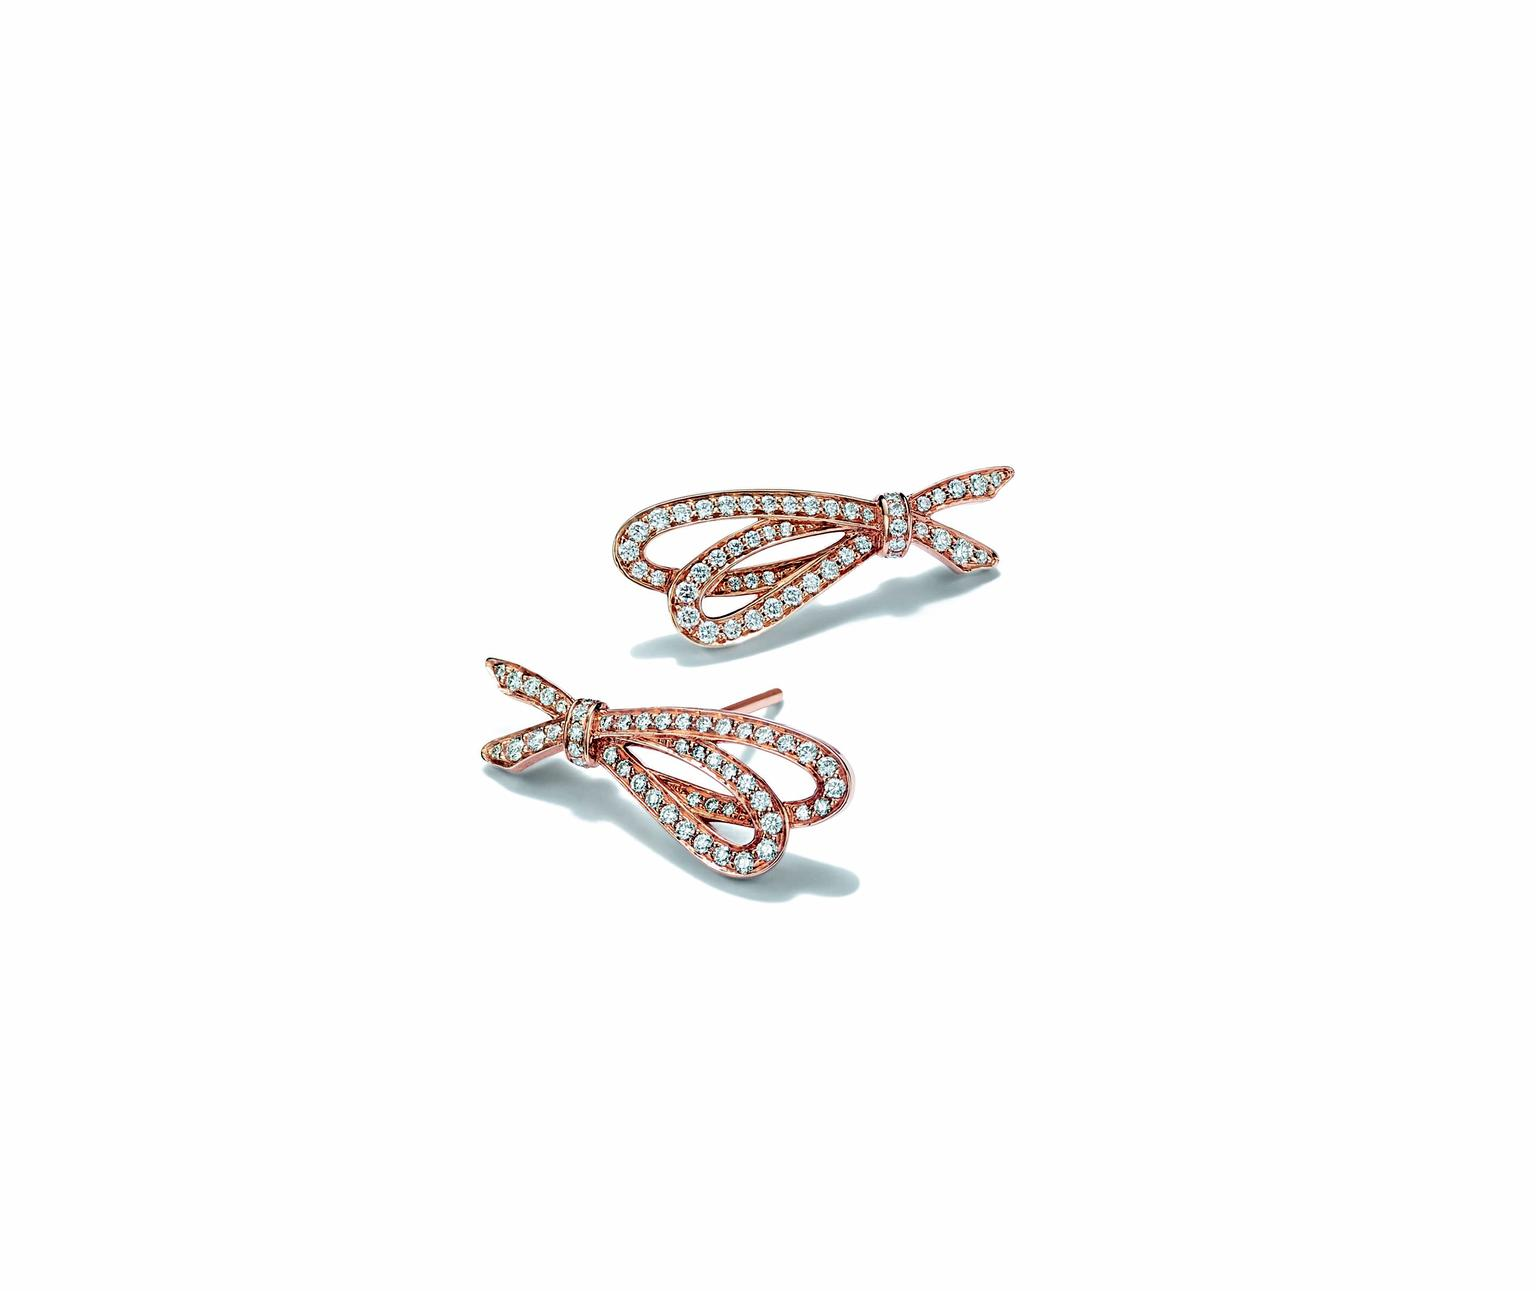 Bow earrings in rose gold with white diamonds